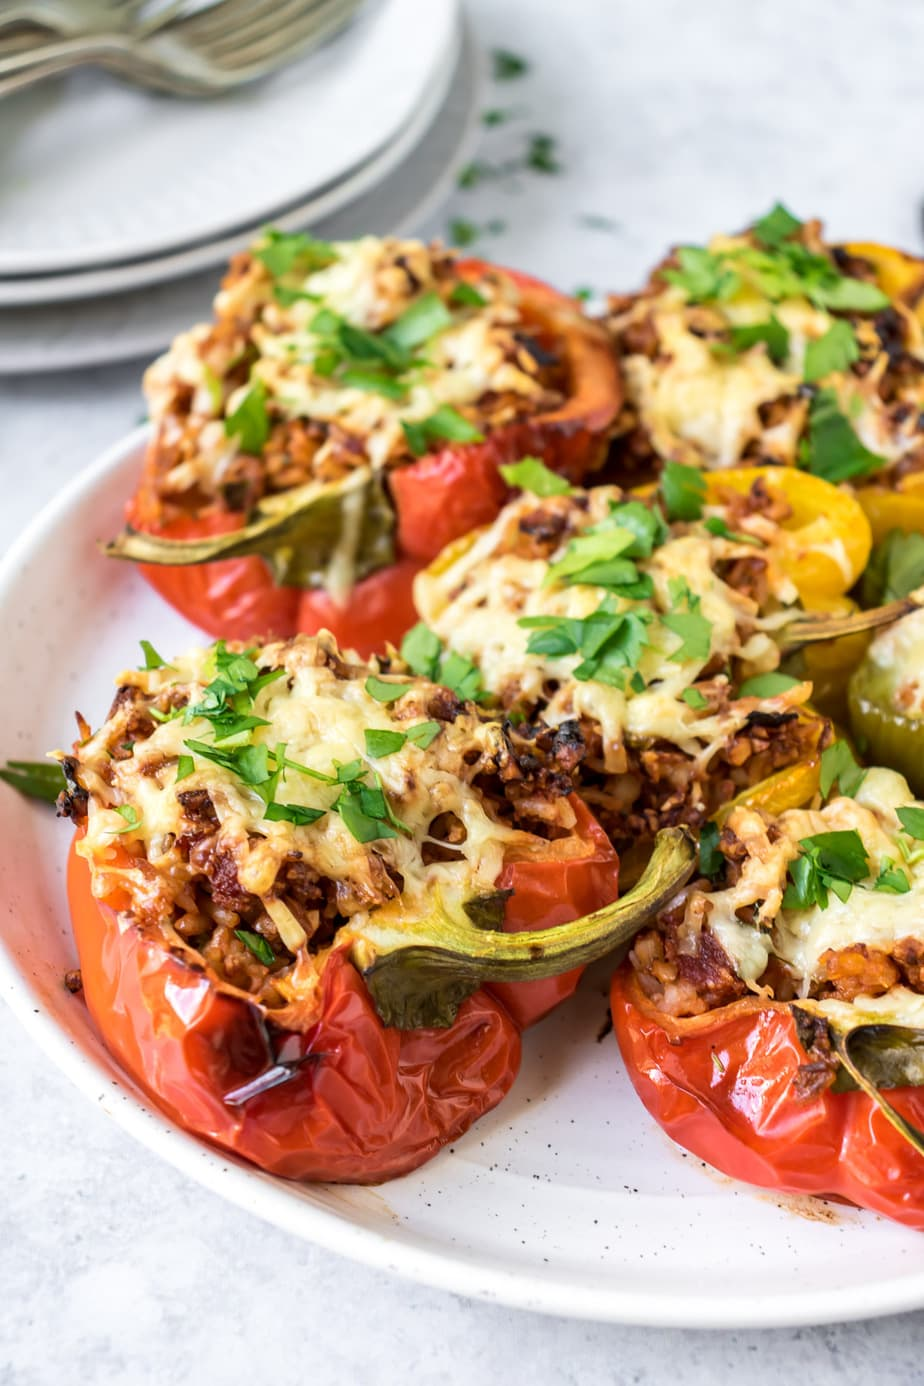 Serving dish of vegetarian stuffed peppers.